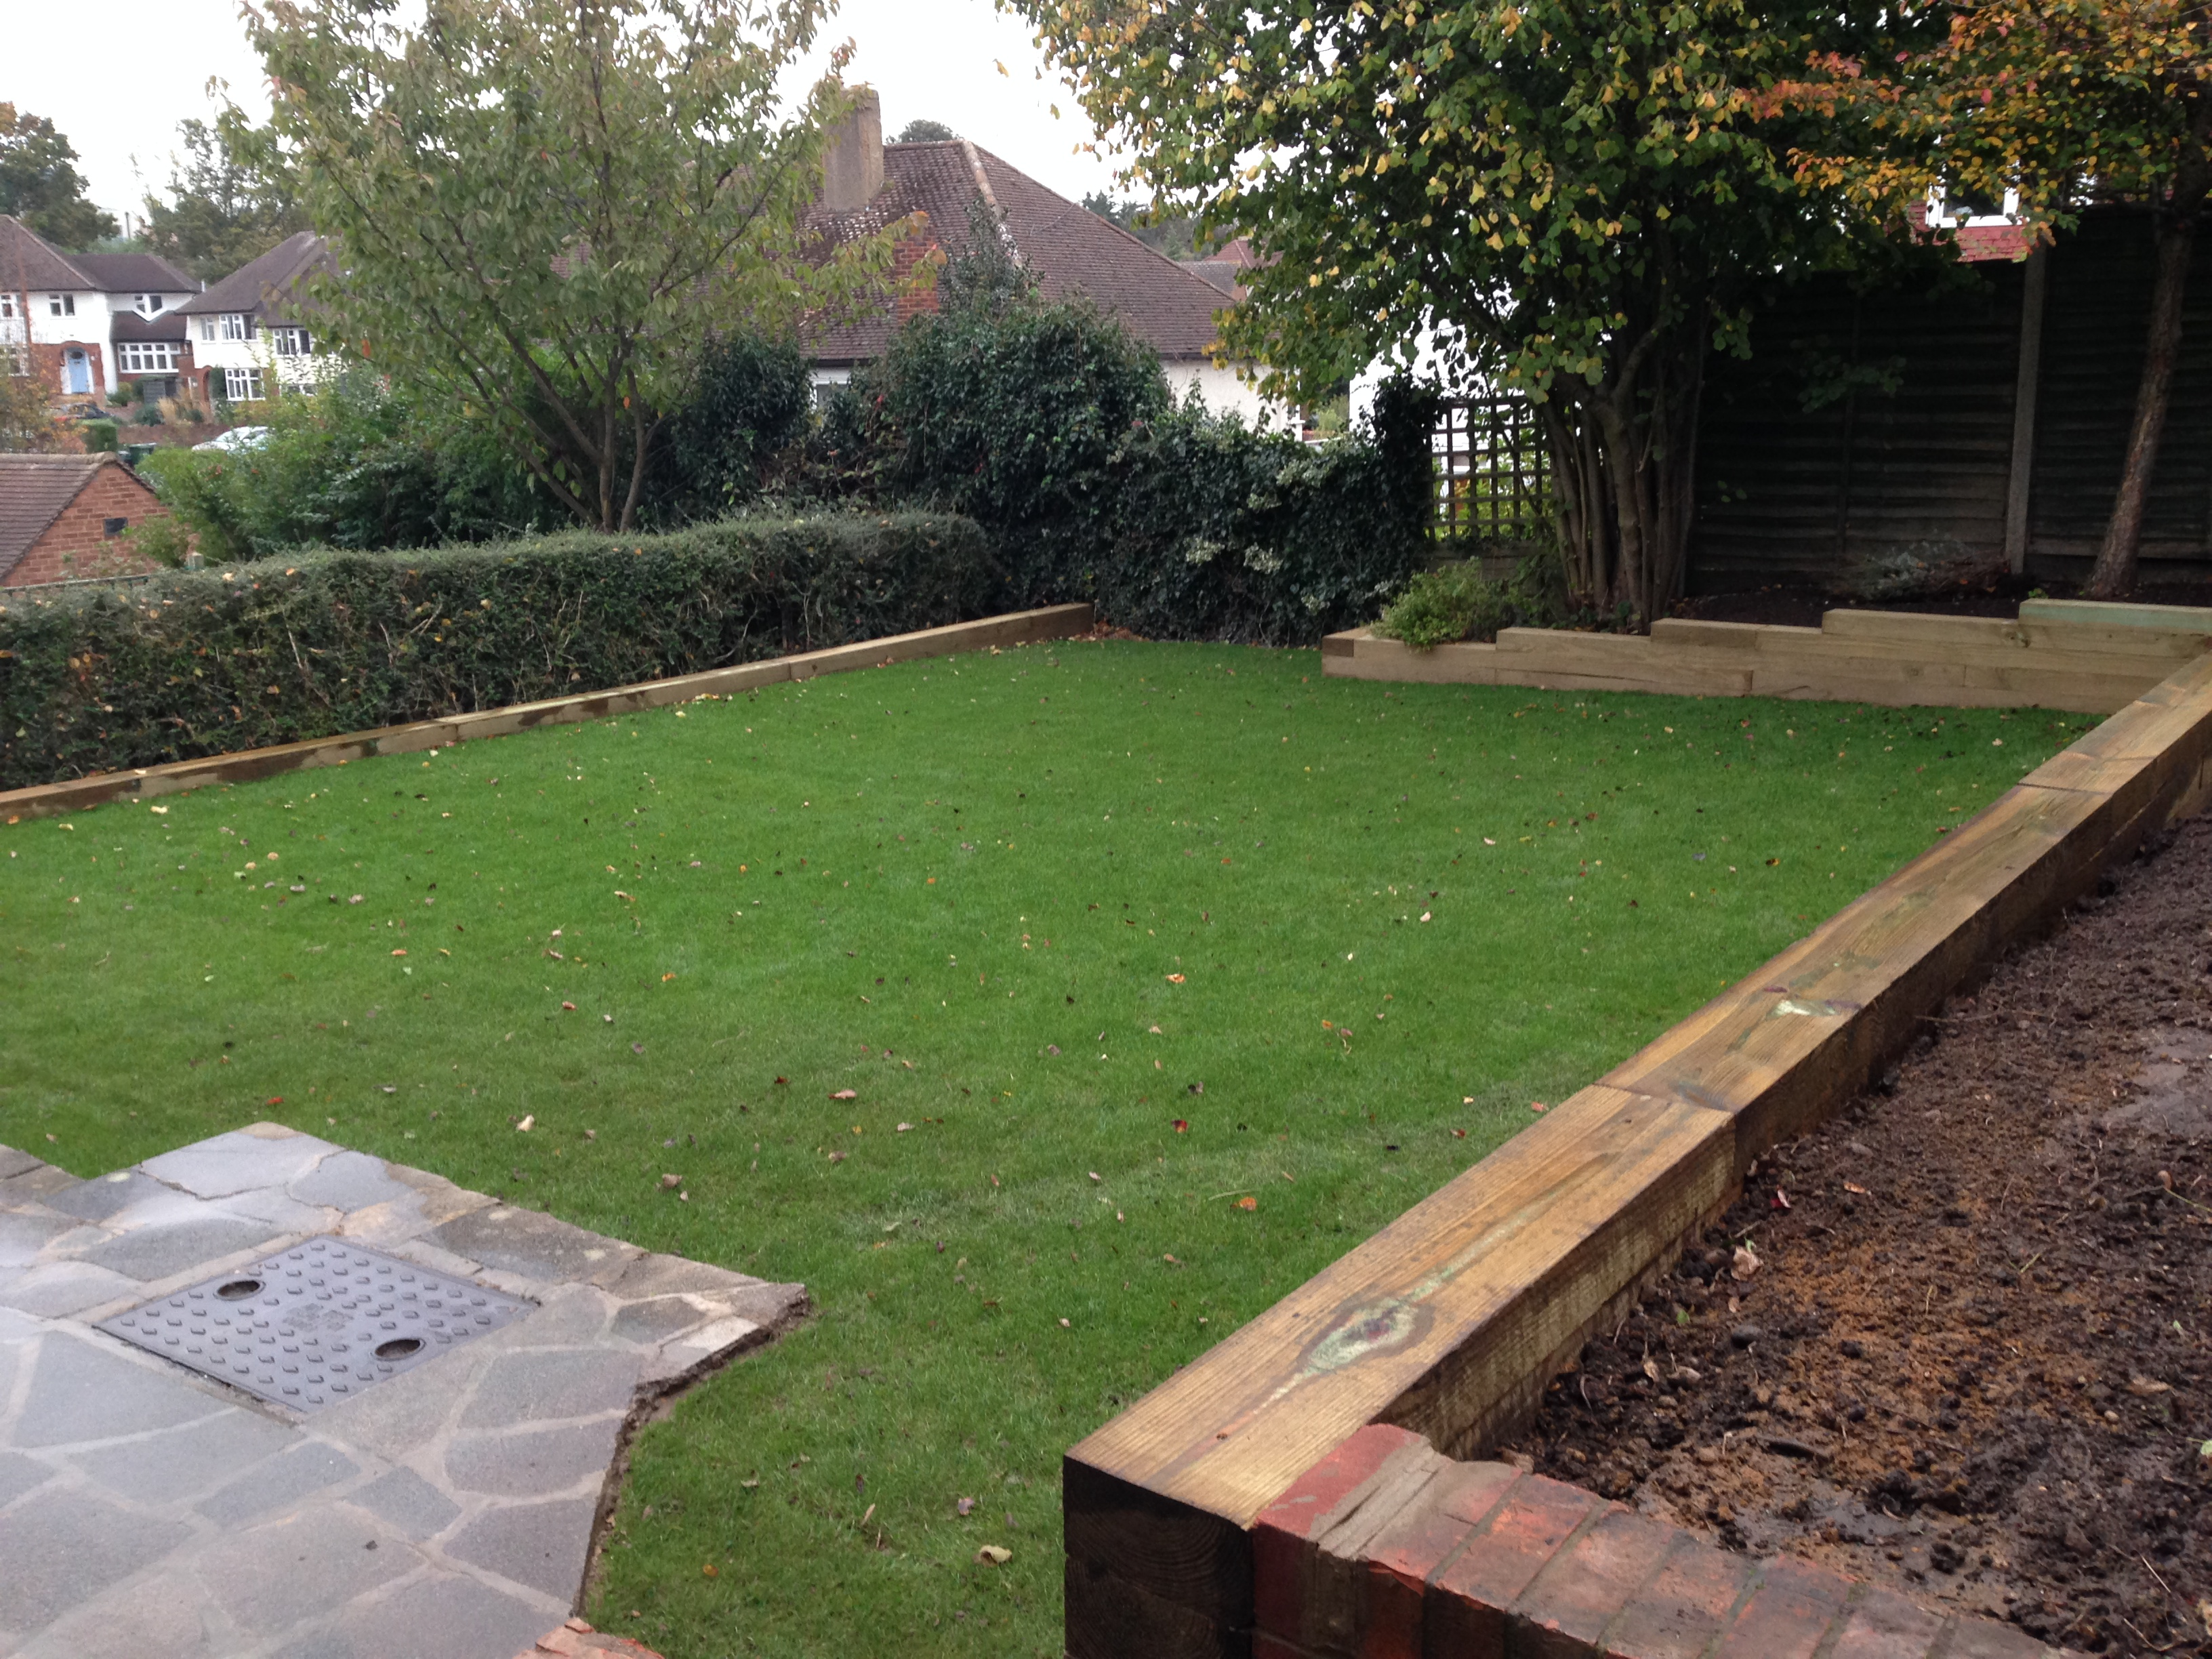 J morris garden services st albans based company for Garden designs uk